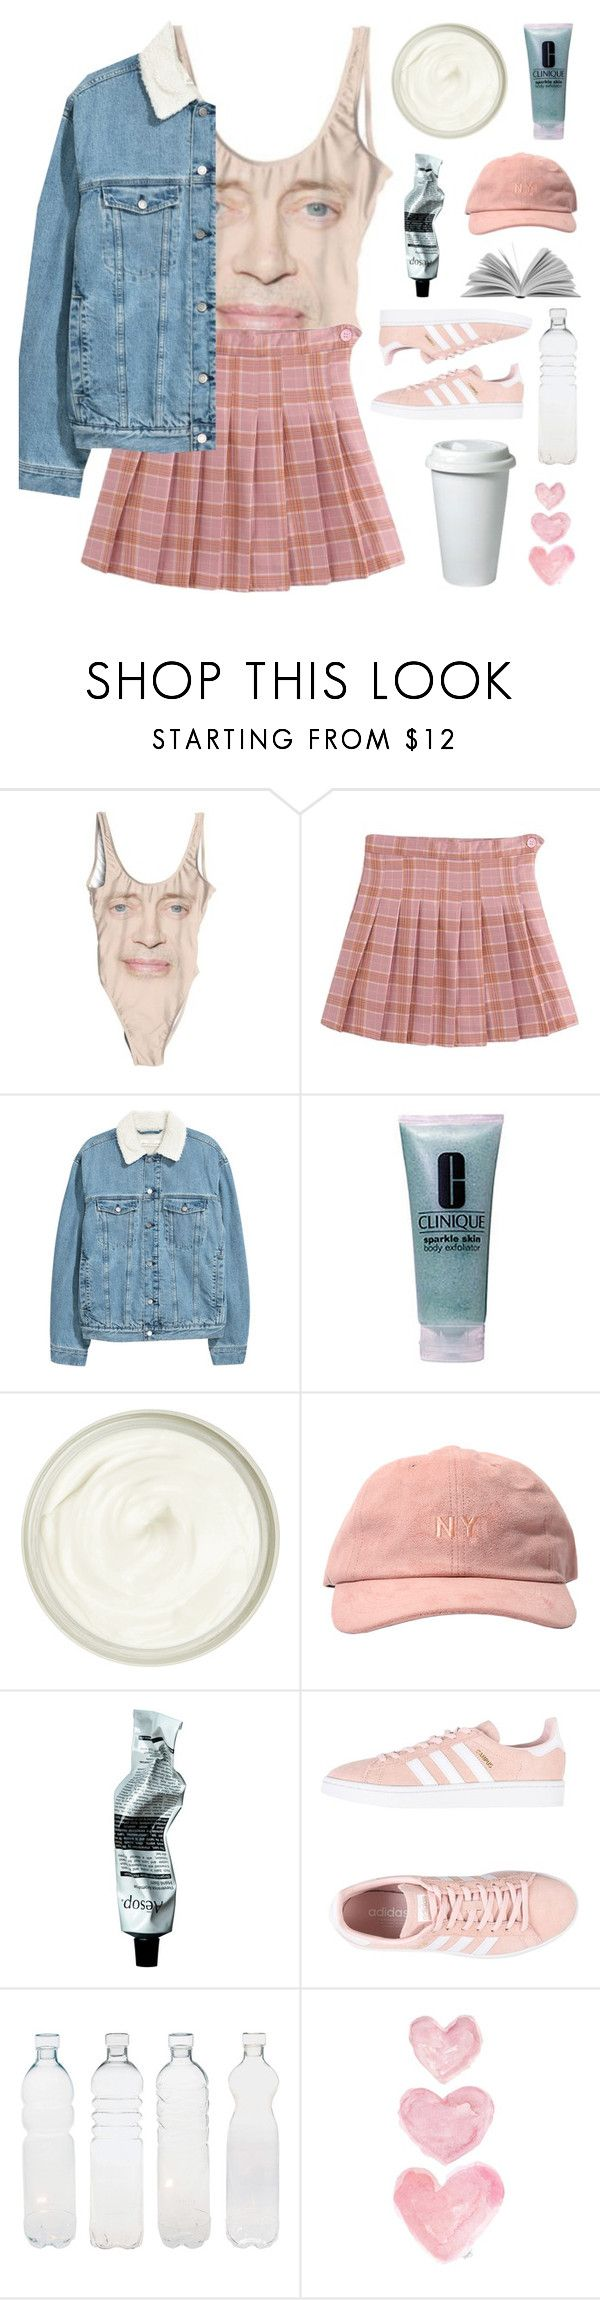 """""""i'm hollywood actor and teen idol steve buscemi"""" by megan-vanwinkle ❤ liked on Polyvore featuring Clinique, Susanne Kaufmann, Aesop, adidas Originals, Seletti, WALL, polyvoreeditorial and powerlook"""